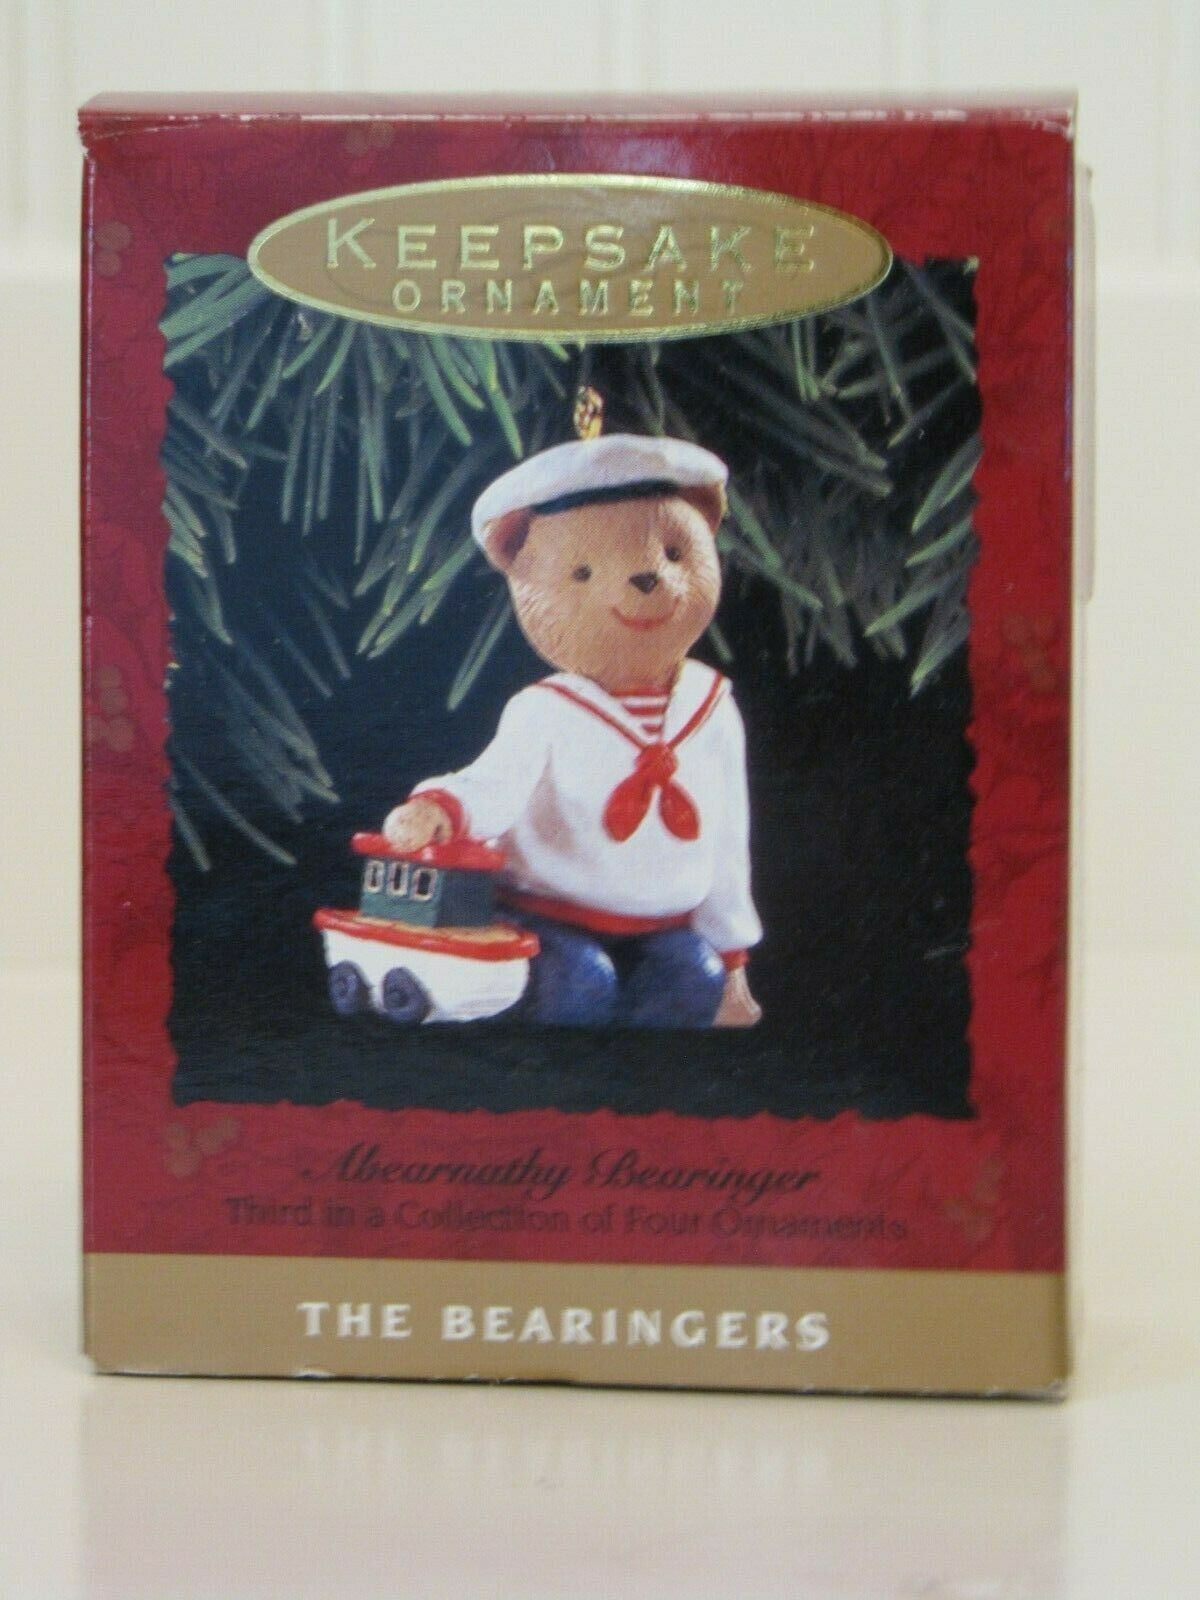 (5) Hallmark Keepsake The Bearingers Ornaments 1993 Без бренда - фотография #6